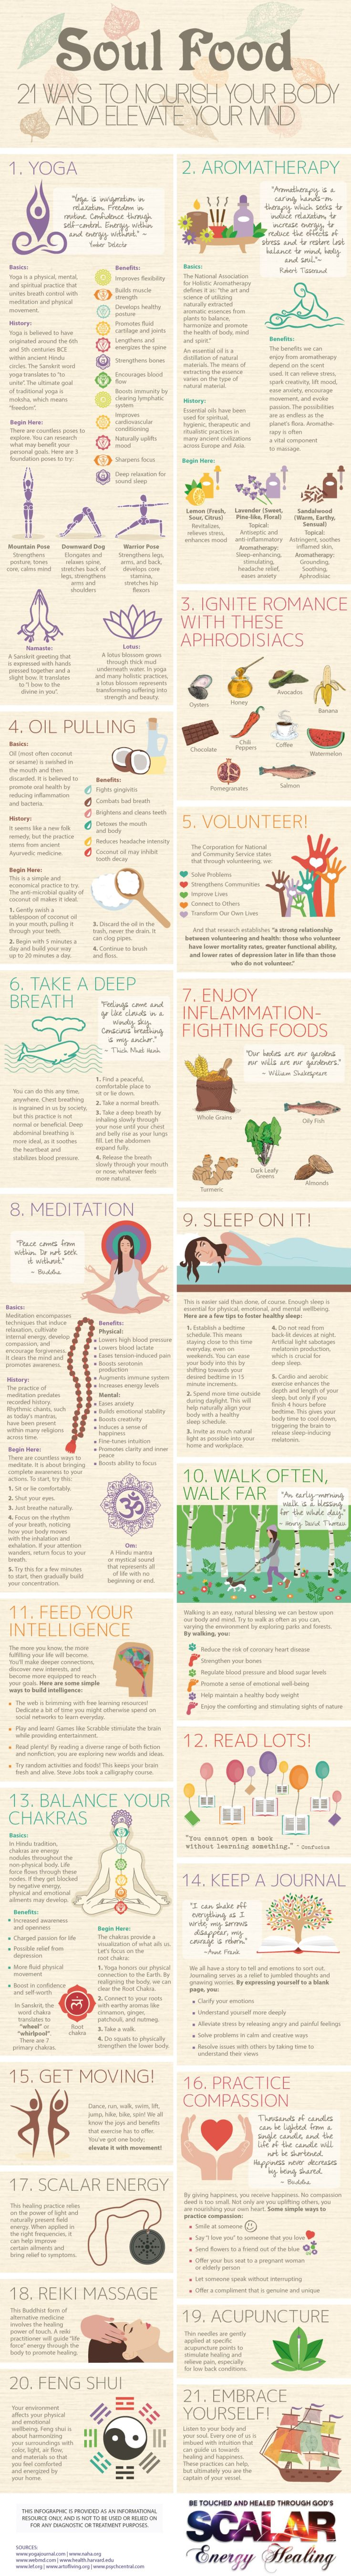 soul-food-21-ways-to-nourish-your-body-and-elevate-your-mind_55647de59305f_w1500